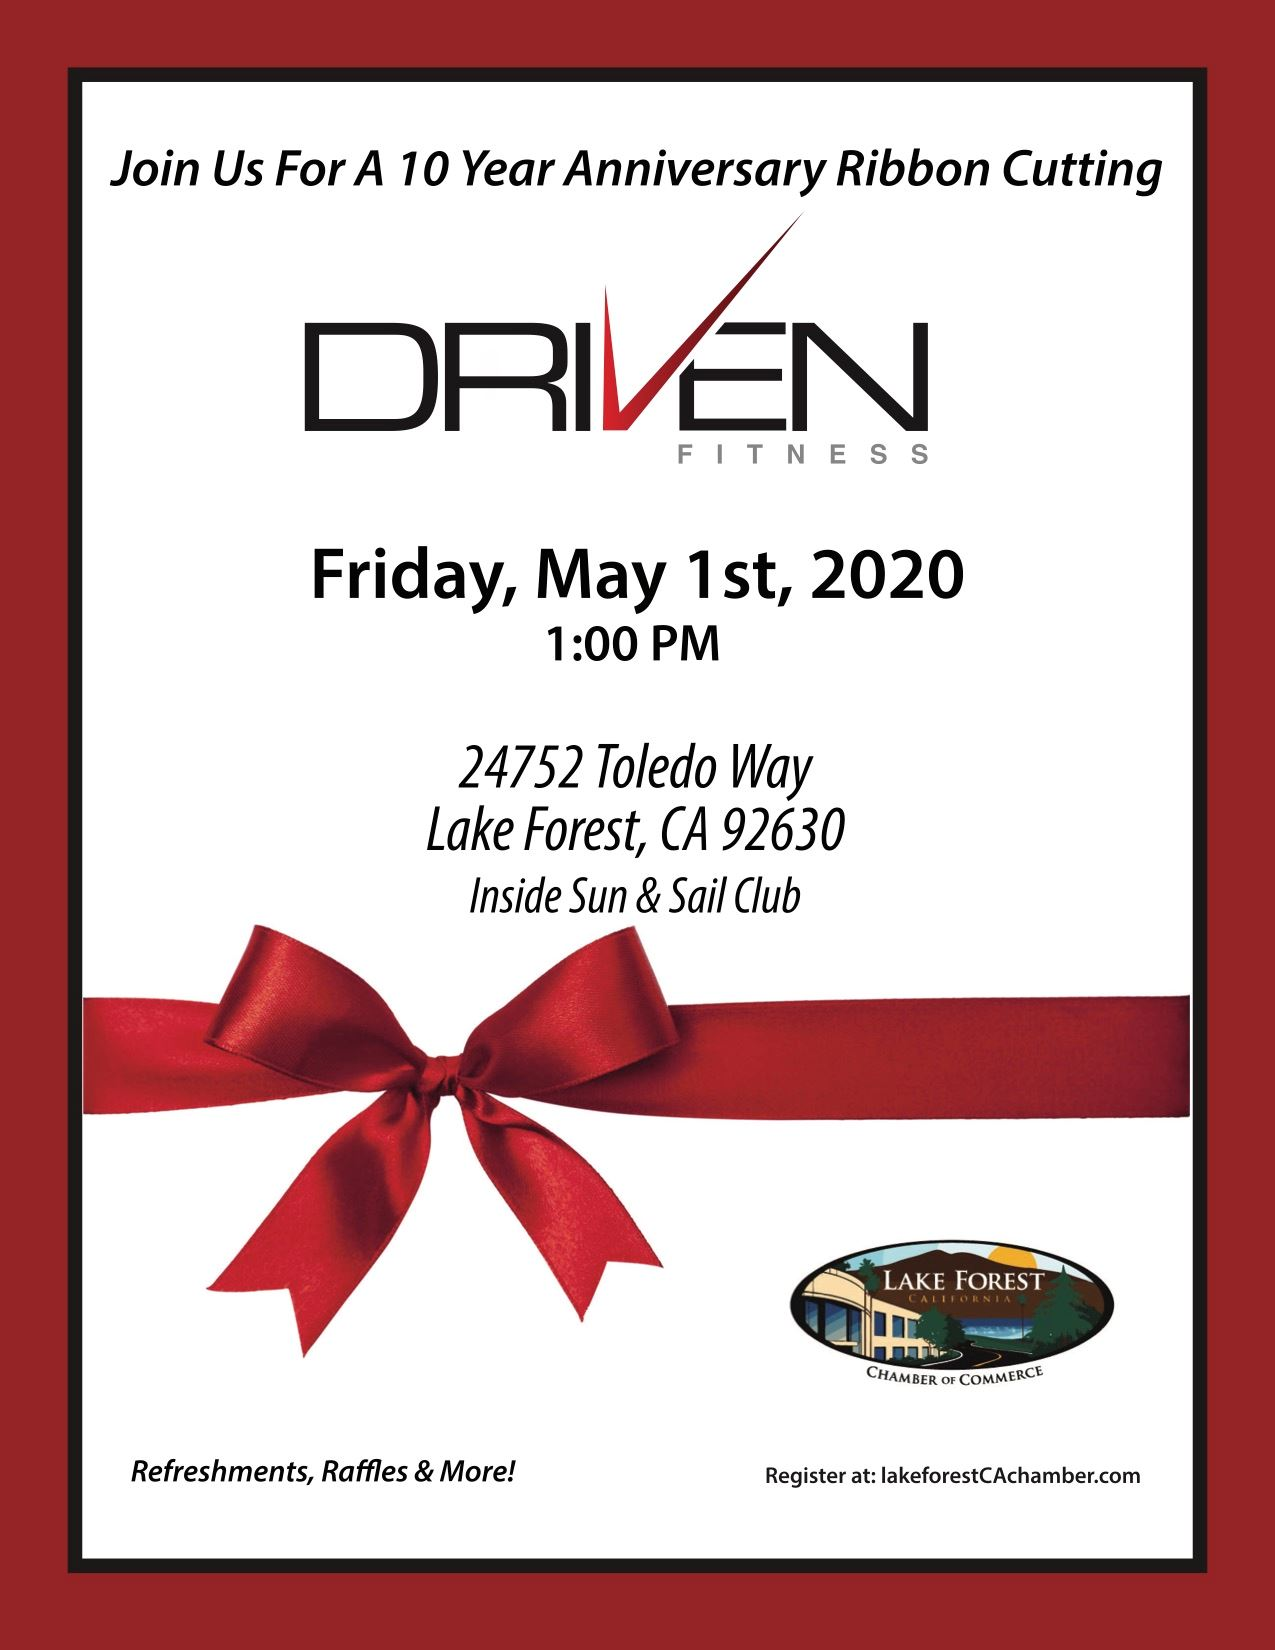 Driven Fitness Ribbon Cutting